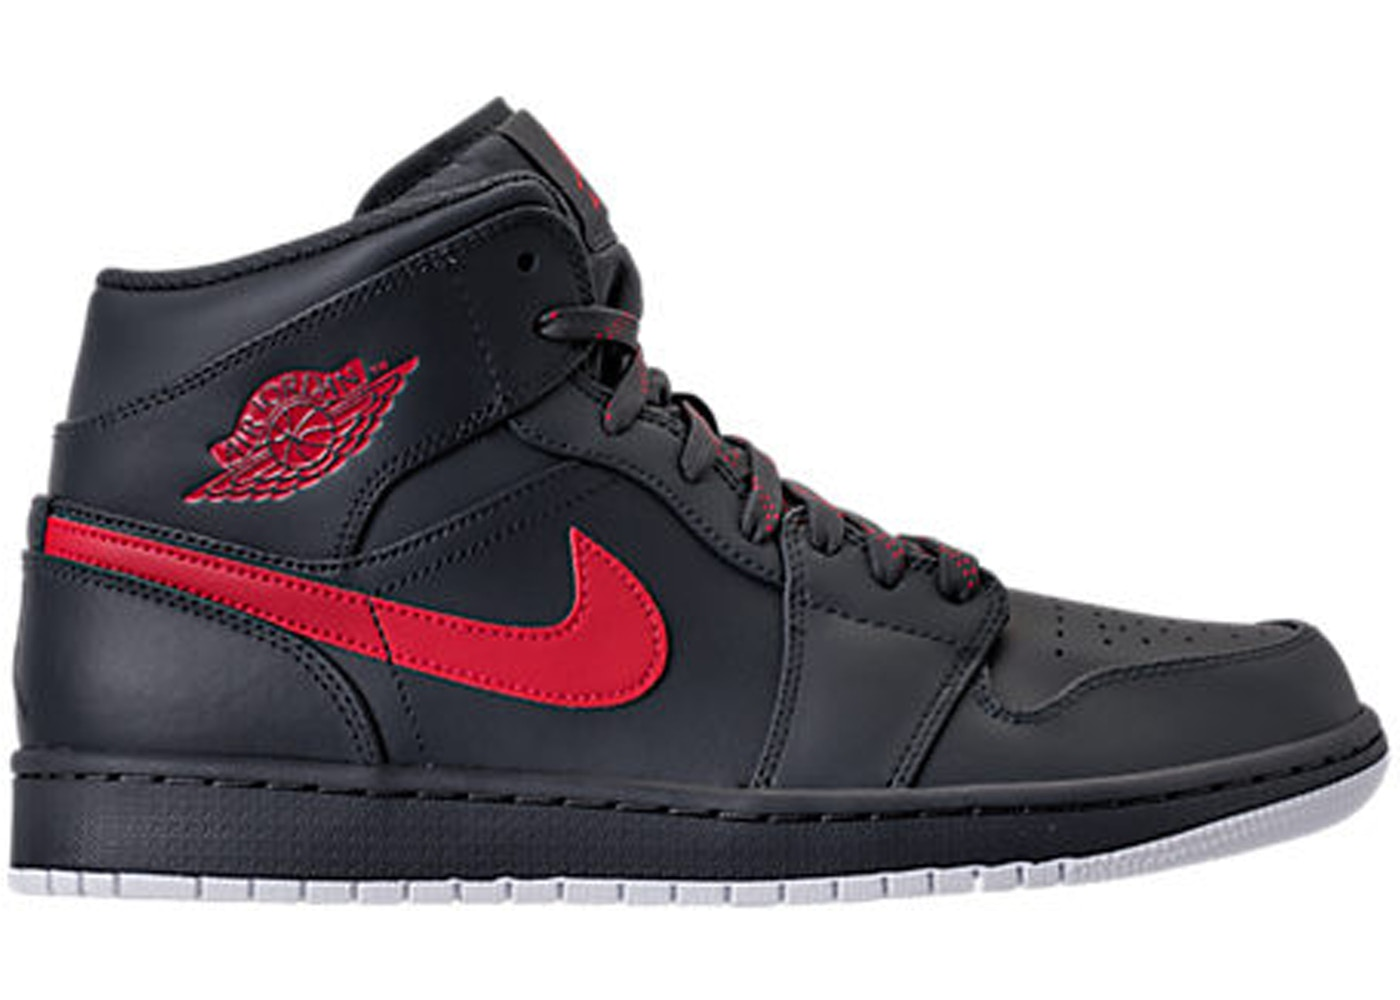 quality design b49e6 535d1 Jordan 1 Retro Mid Anthracite Gym Red